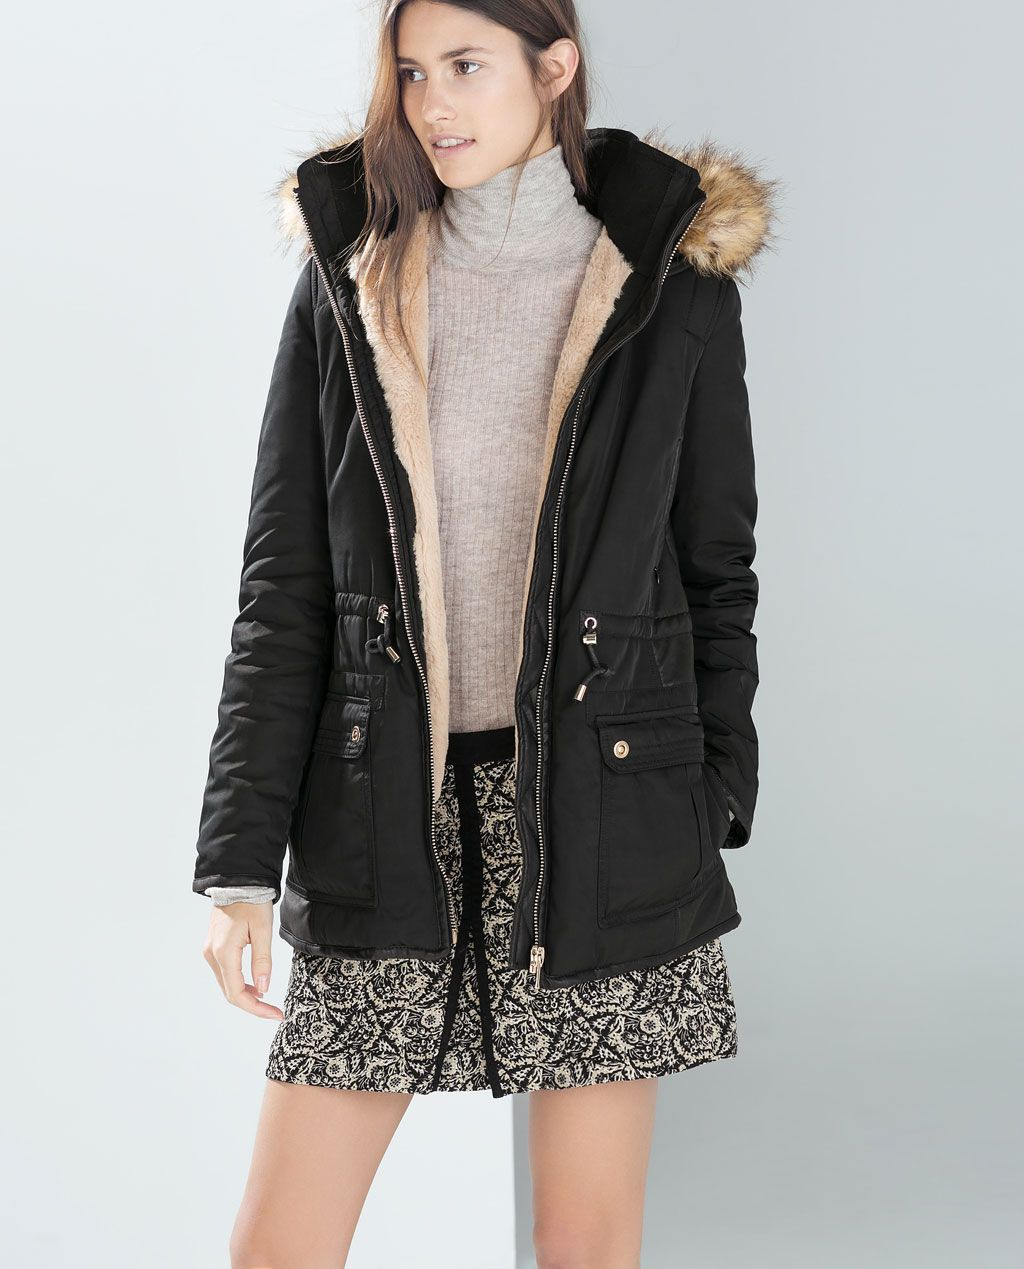 1b7add74 ZARA - TRF - SHORT PARKA | Fashion & Jewelry